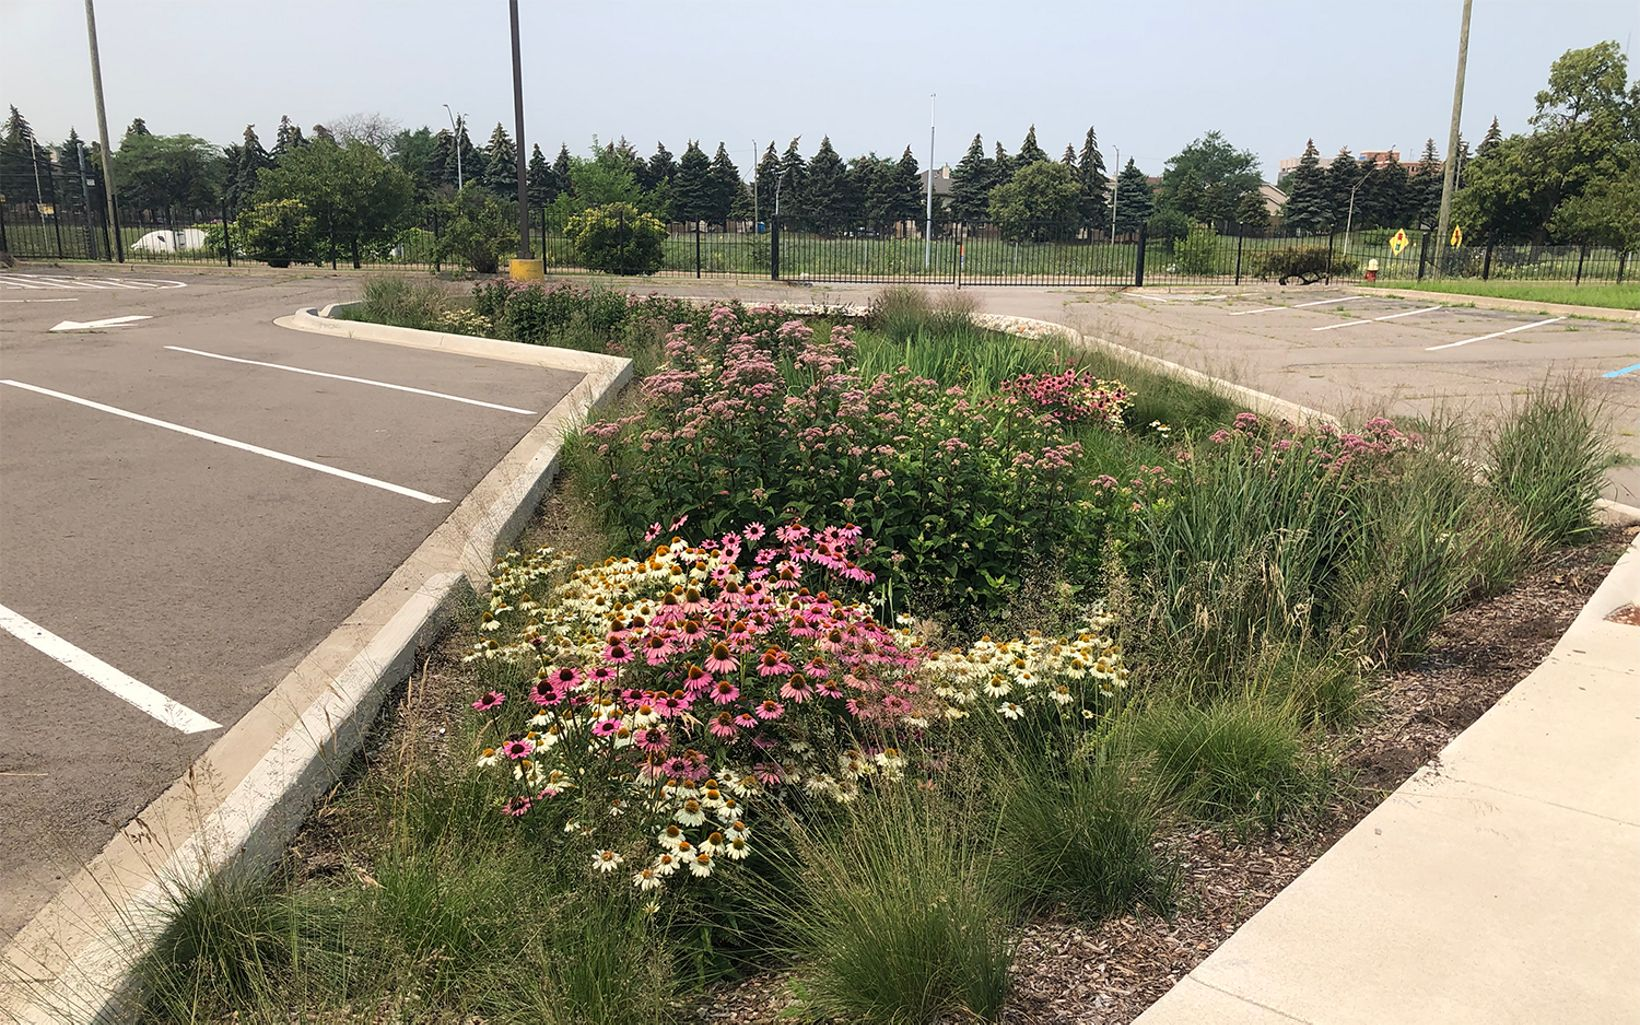 Flowers are blooming in Sacred Heart Church's green stormwater infrastructure.